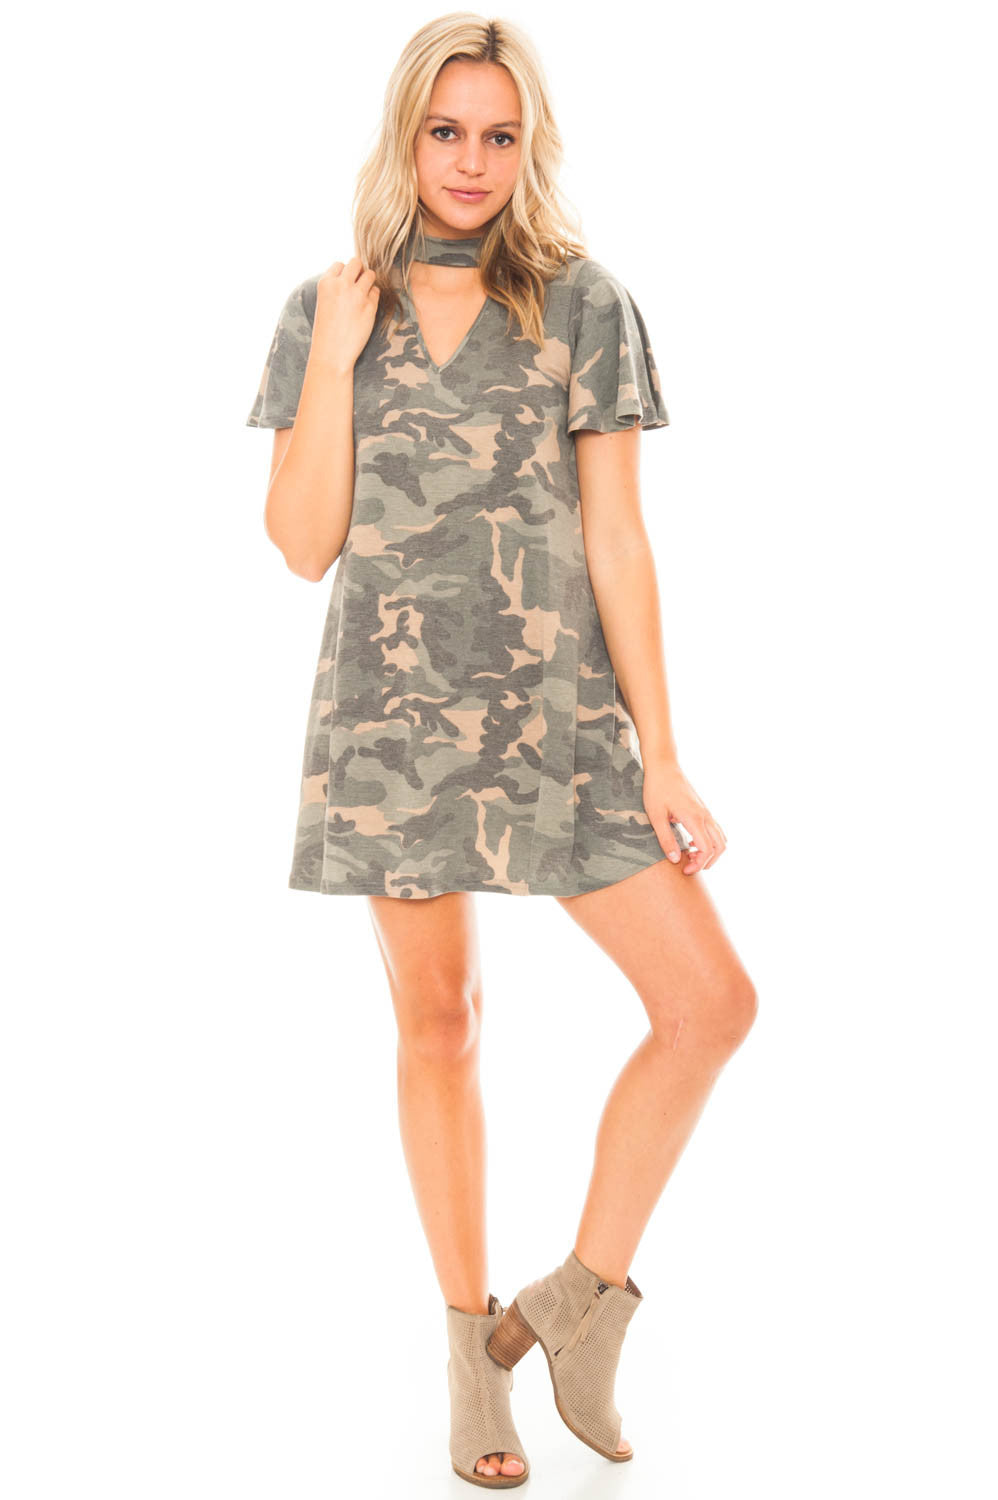 Dress - Mock Neck Camo Dress